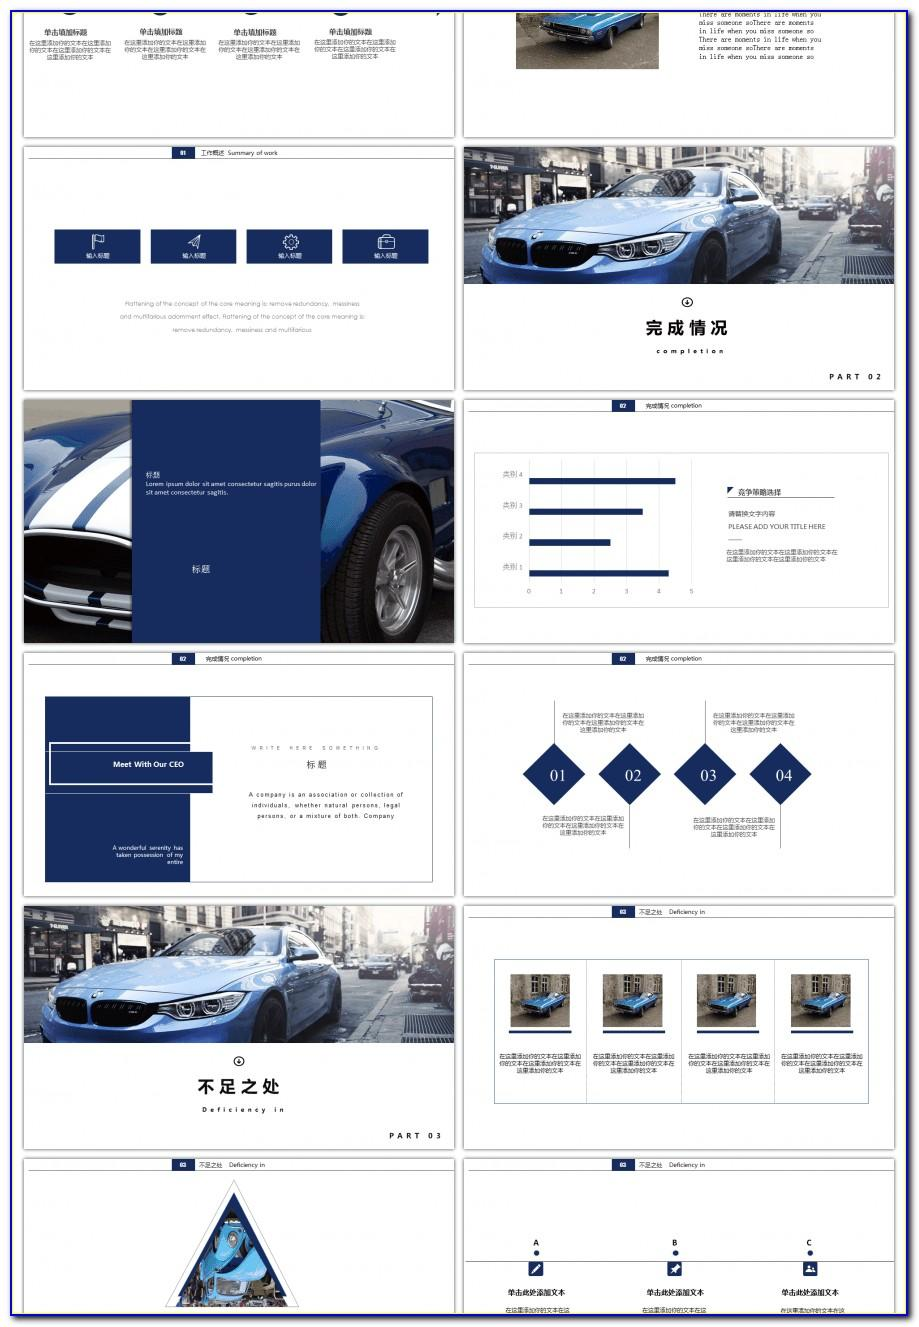 Auto Repair Shop Business Plan Template